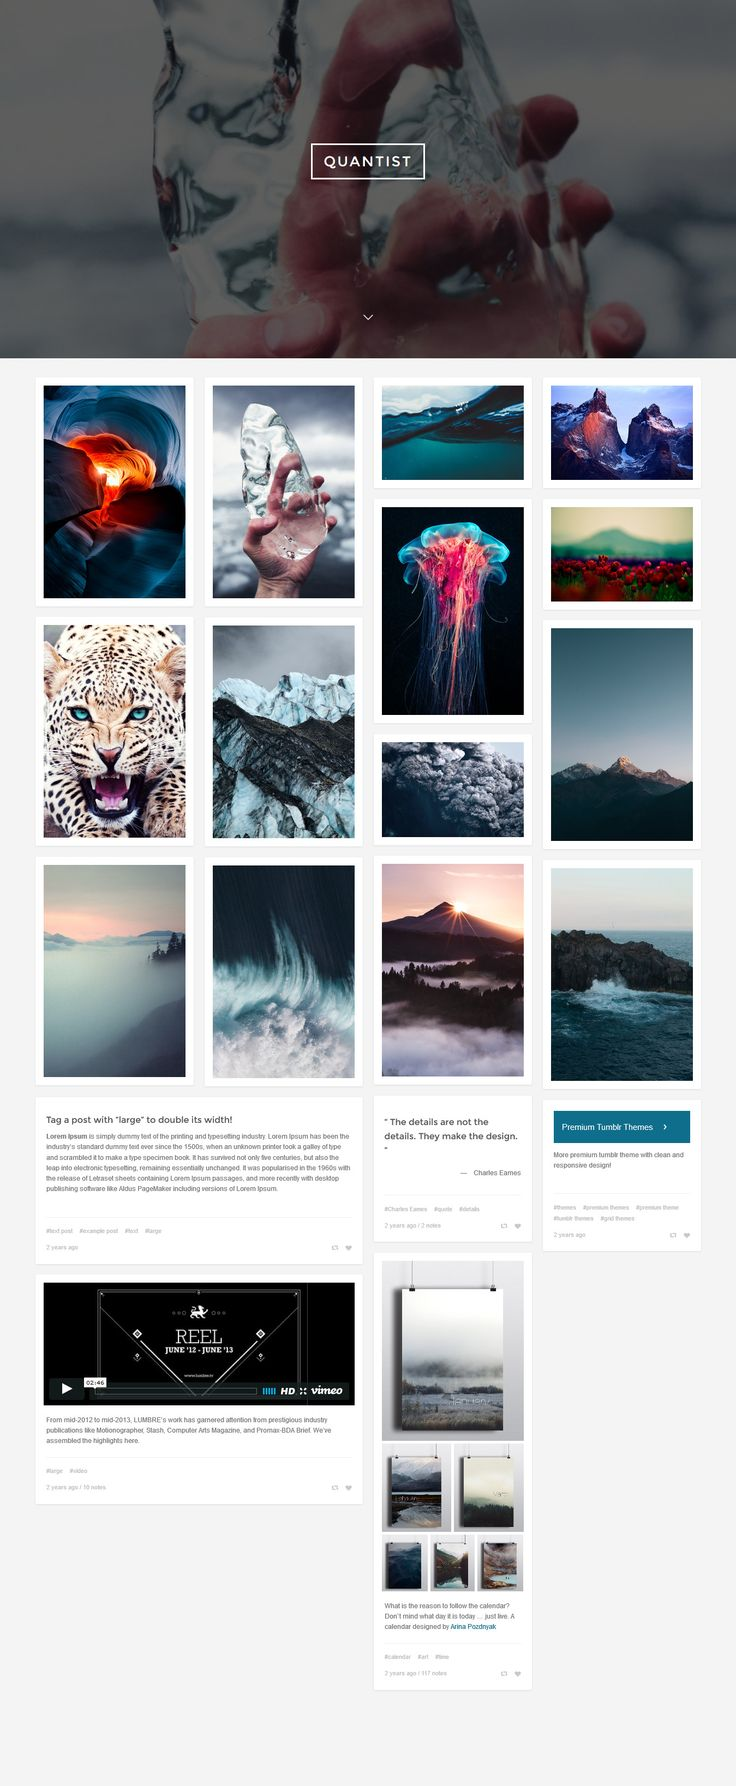 85 Best images about Tumblr Themes on Pinterest | Jasmine, Blog ...